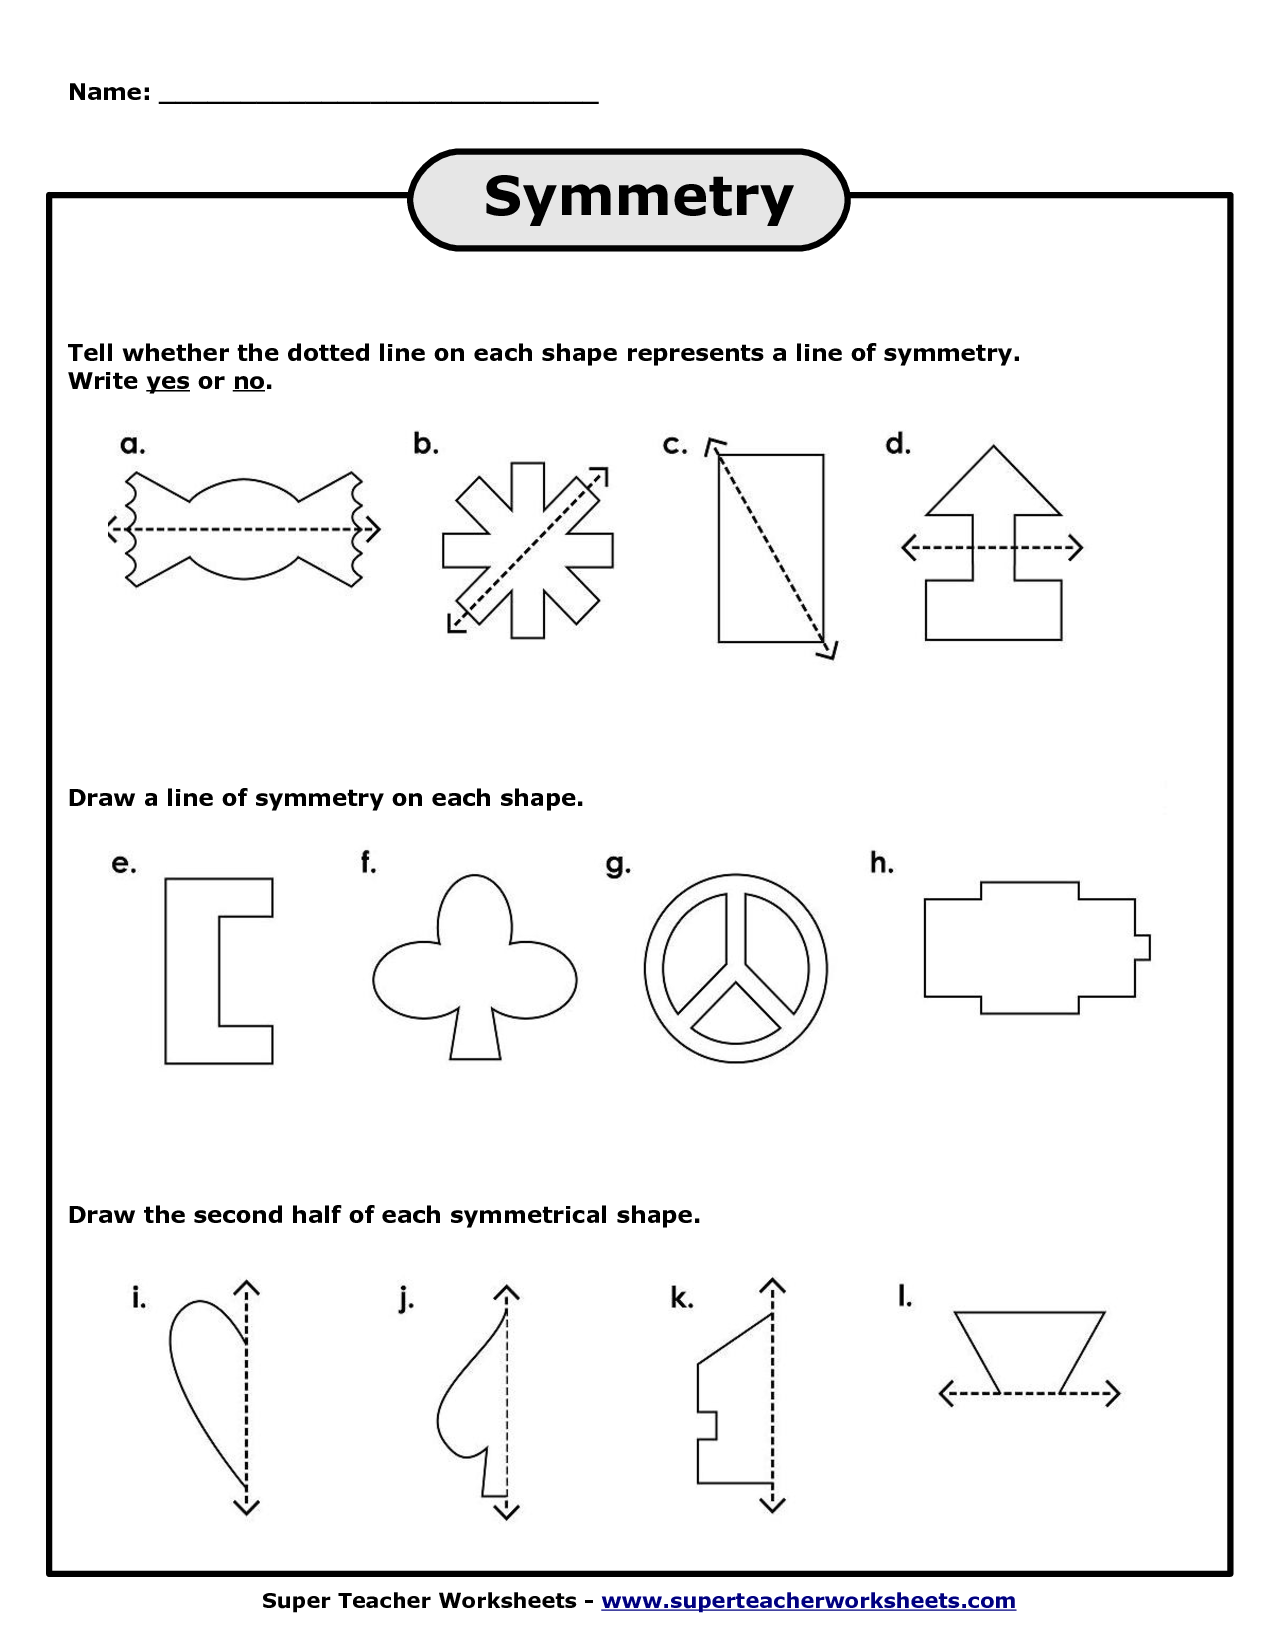 Super Teacher Worksheet Symmetry | Printable Worksheets ...